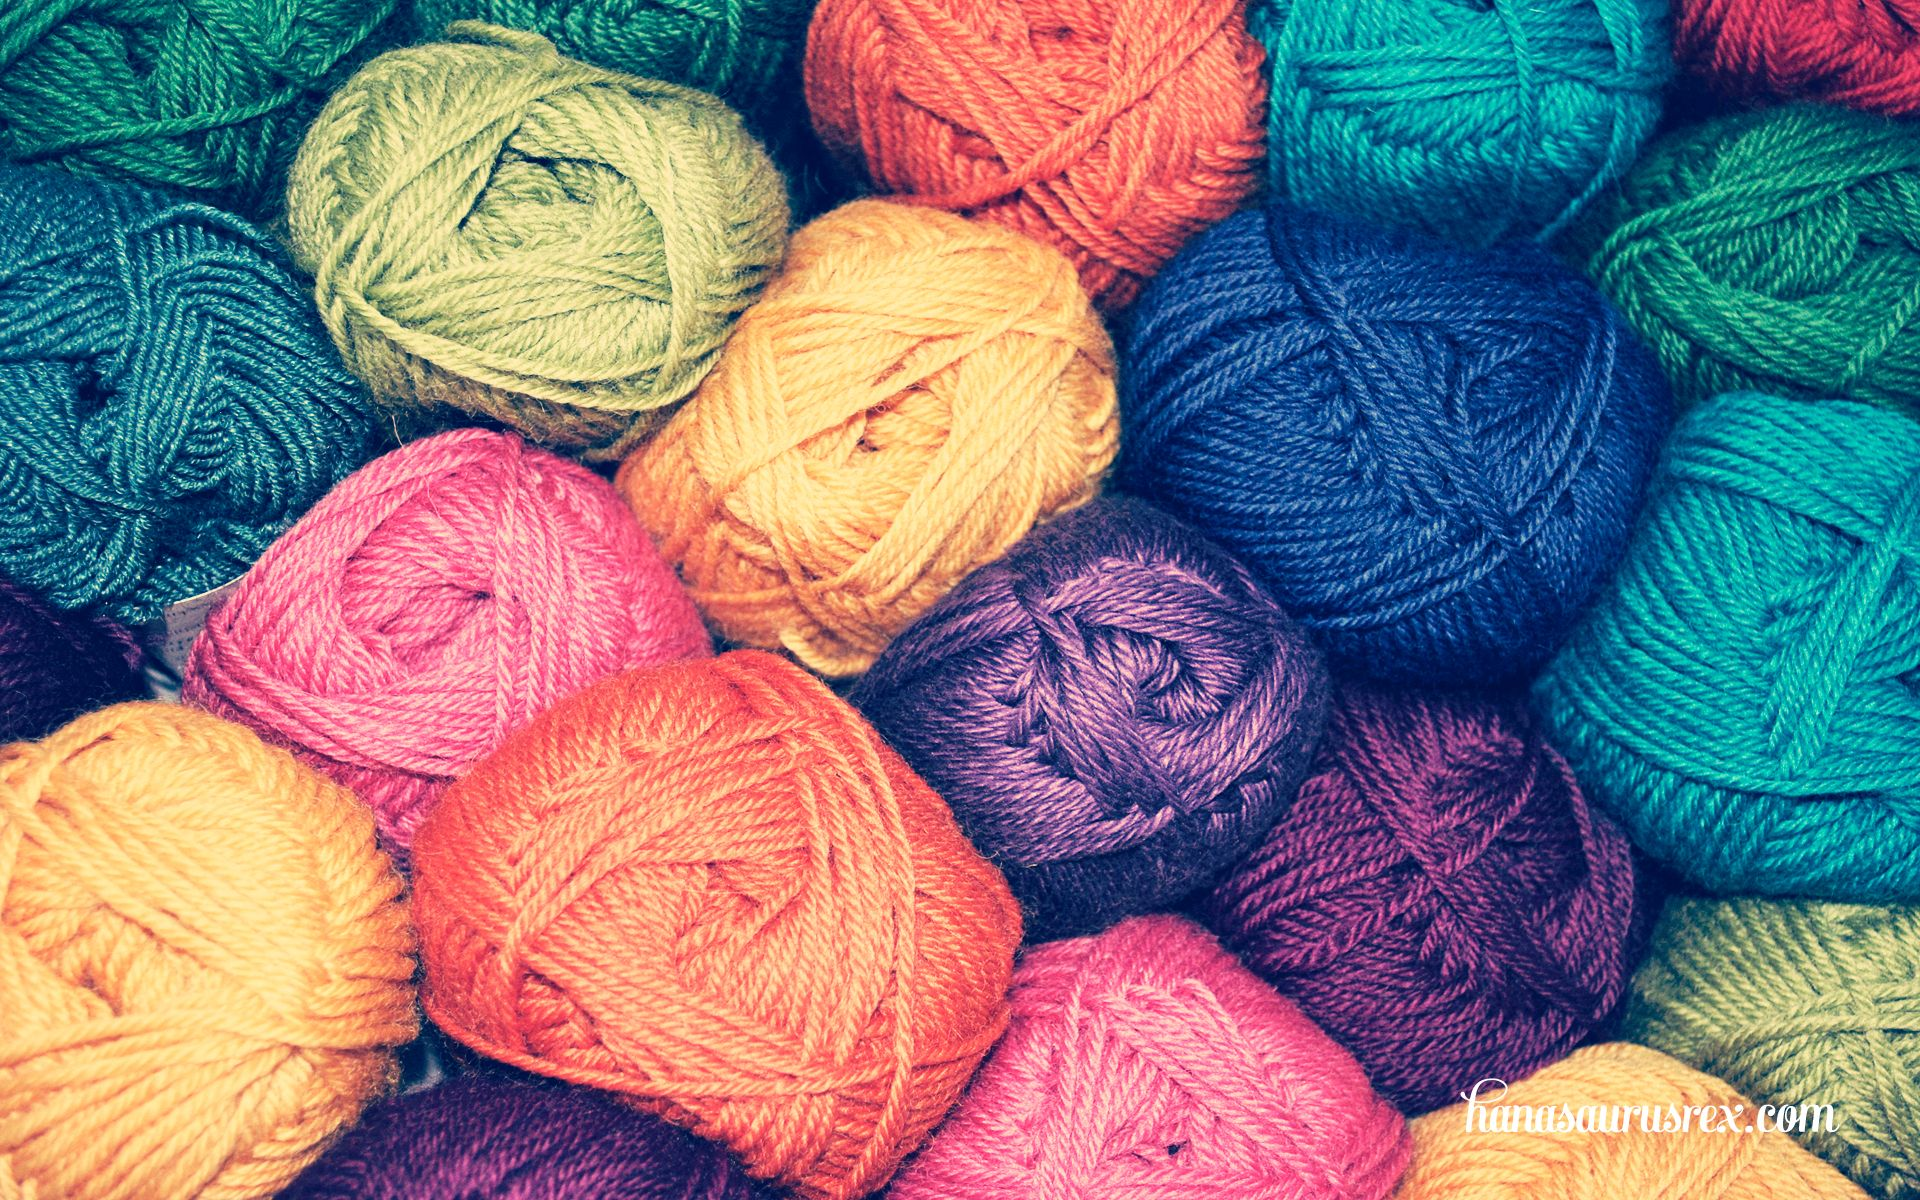 Crocheting Yarn : Crochet Fridays - Crocheters in Central CT (Plainville, CT) Meetup